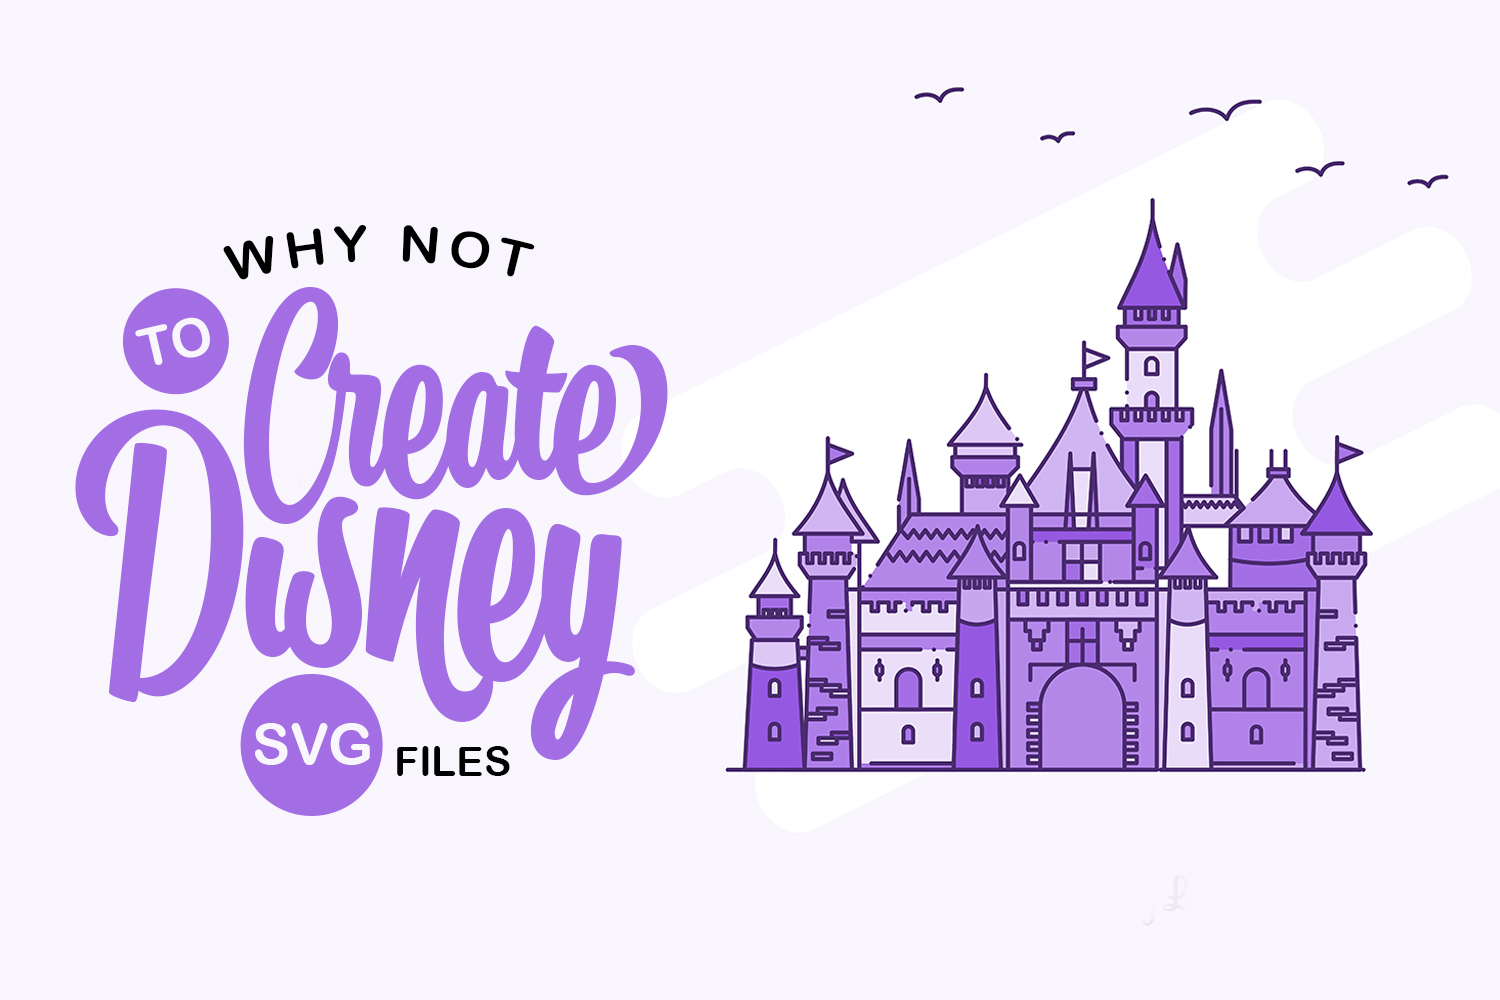 Why NOT to create Disney SVG files